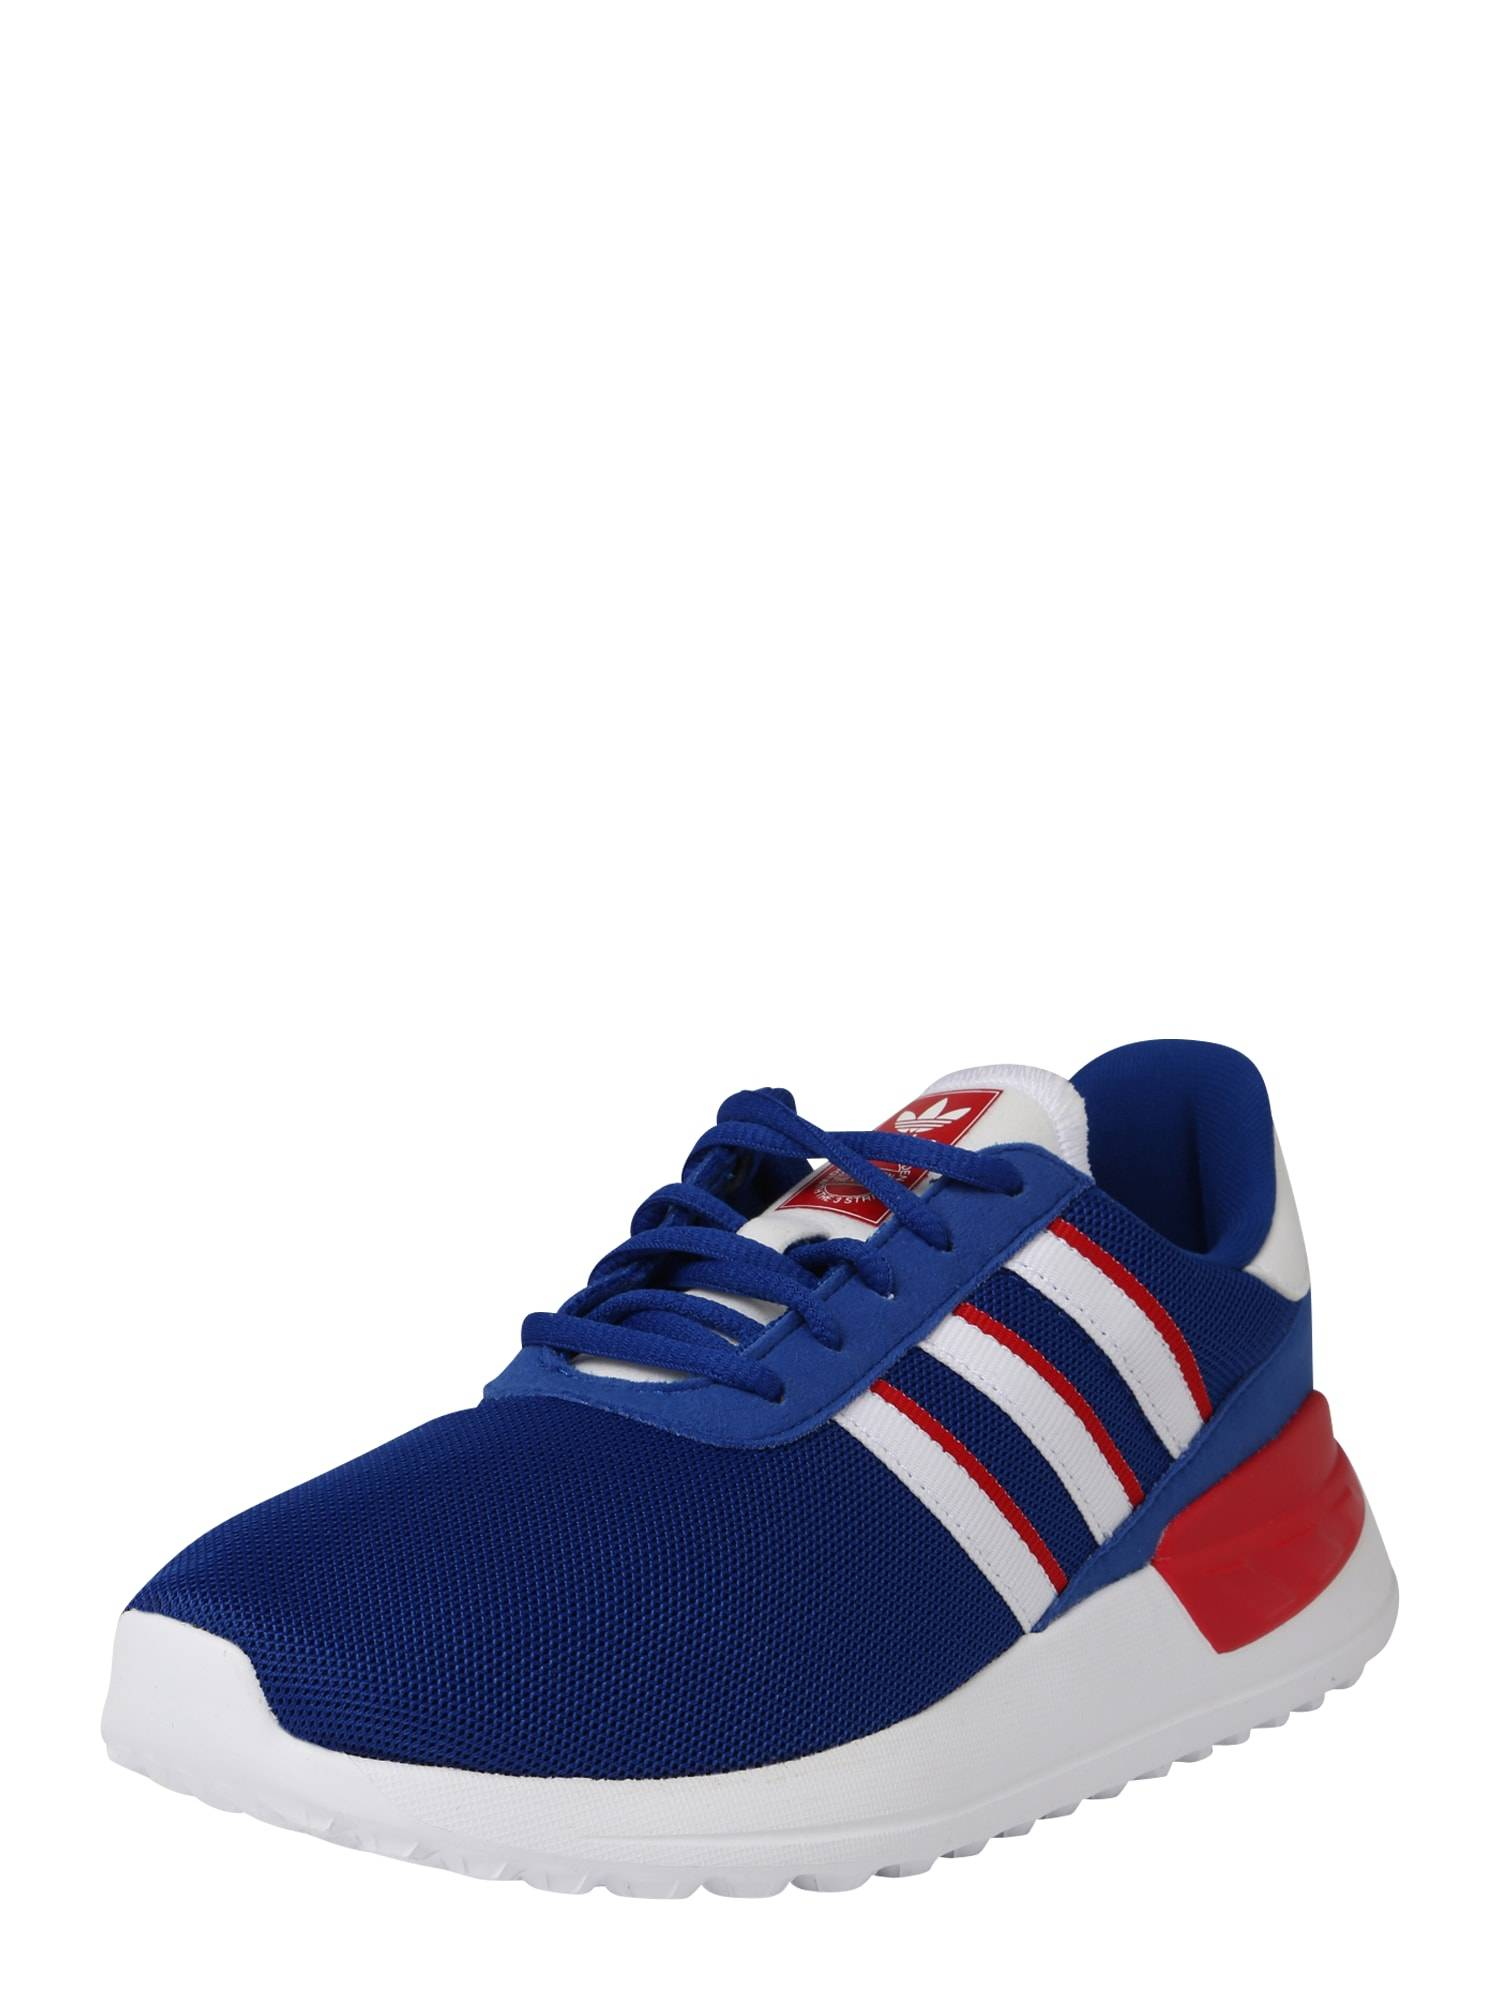 ADIDAS ORIGINALS Baskets 'LA TRAINER LITE C'  - Bleu - Taille: 30 - boy